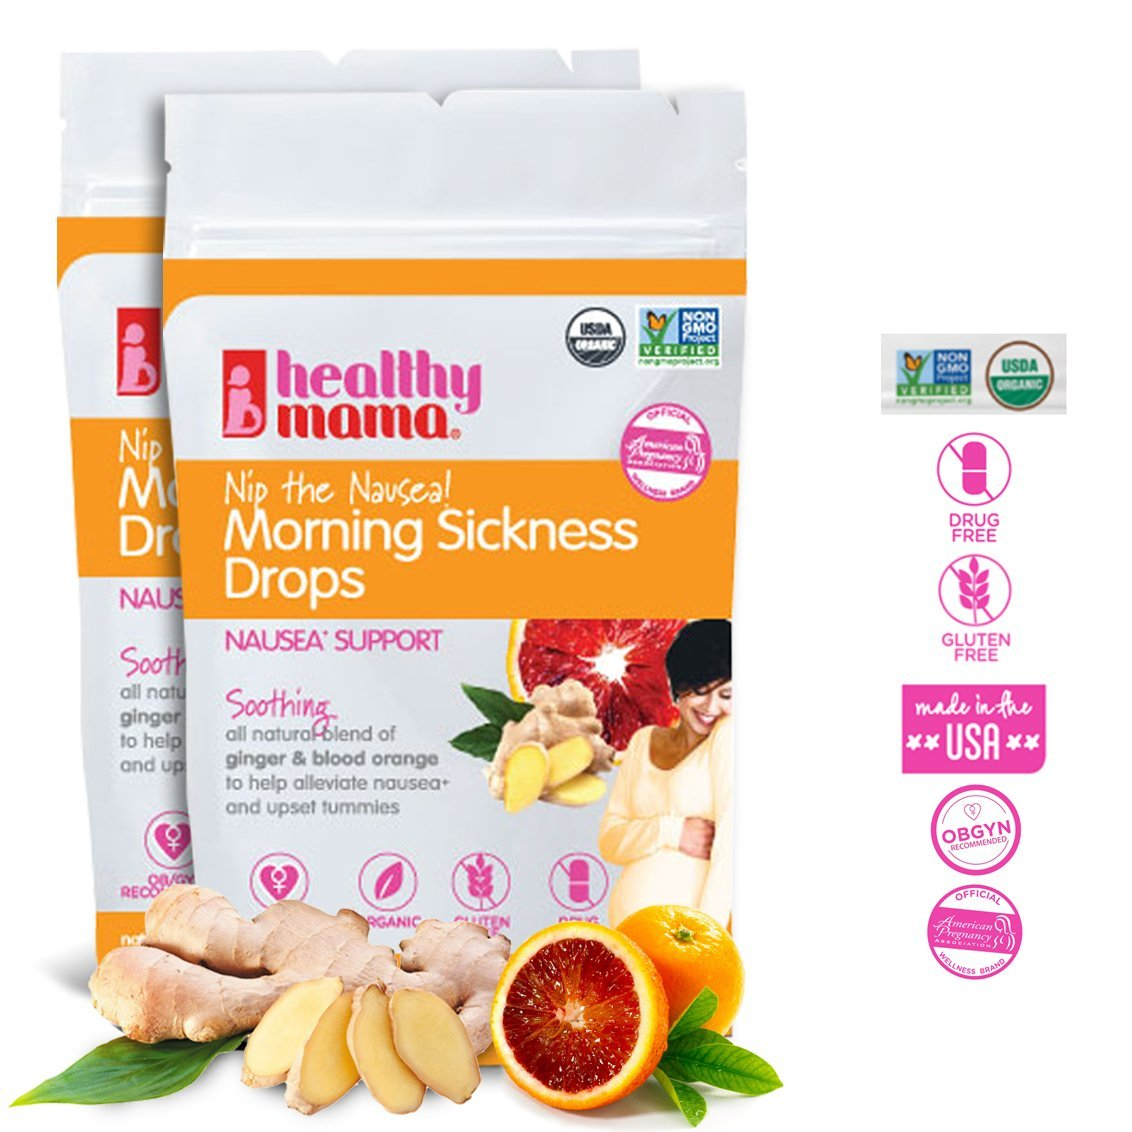 Healthy Mama Morning Sickness Relief Drops Nip the Nausea (2-Pack) Ginger Blood Orange Flavor. OB/GYN Recommended Relief from Morning Sickness, Nausea & Constipation